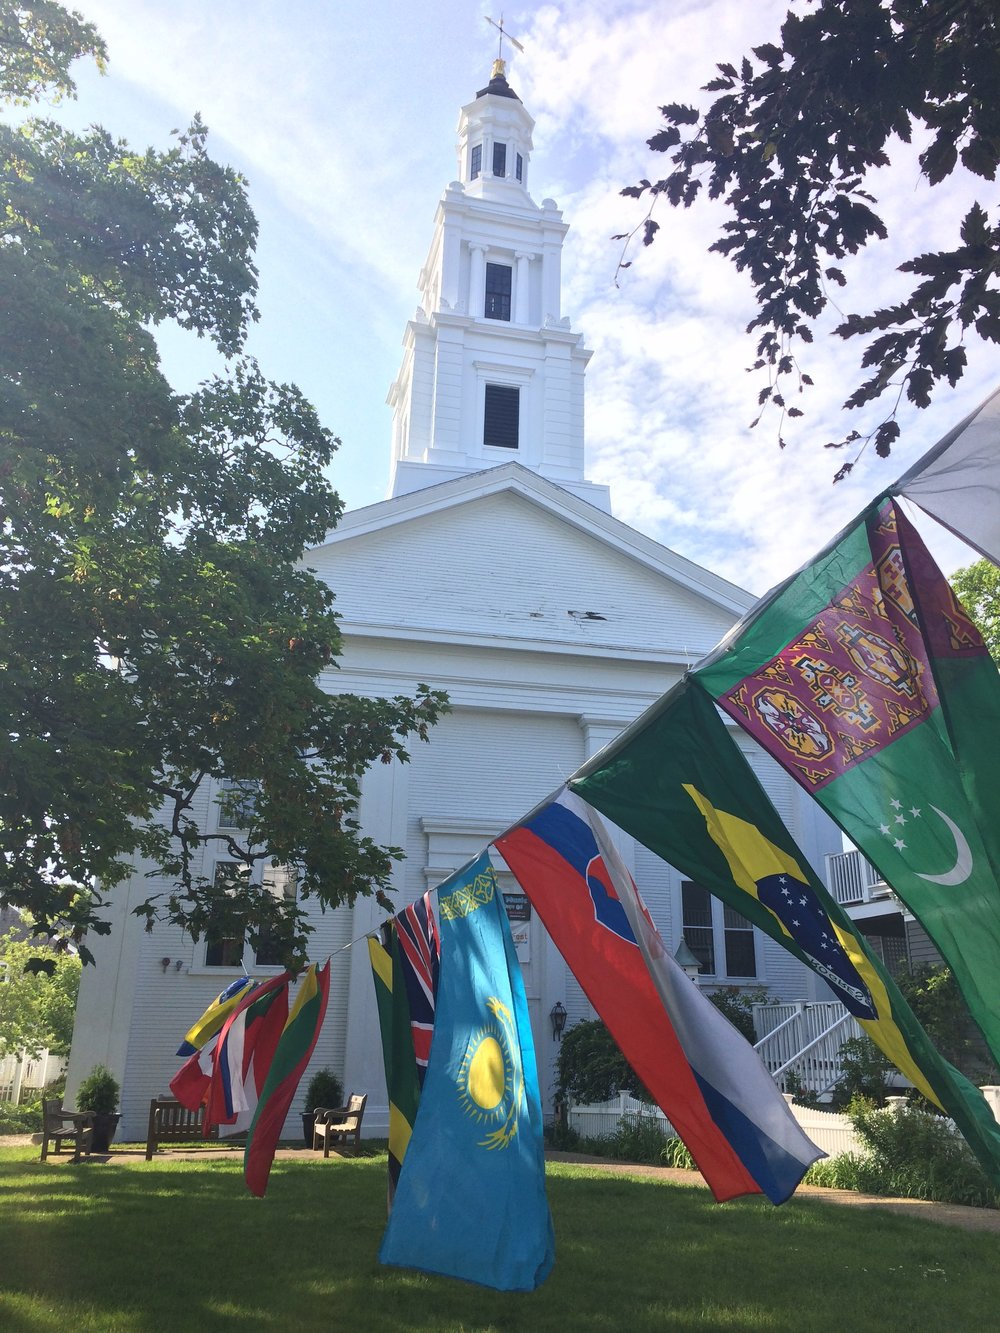 Bike-Month_Provincetown-Blessing-of-the-bikes-Unitarian-Universalist-Meeting-House-Church.jpg